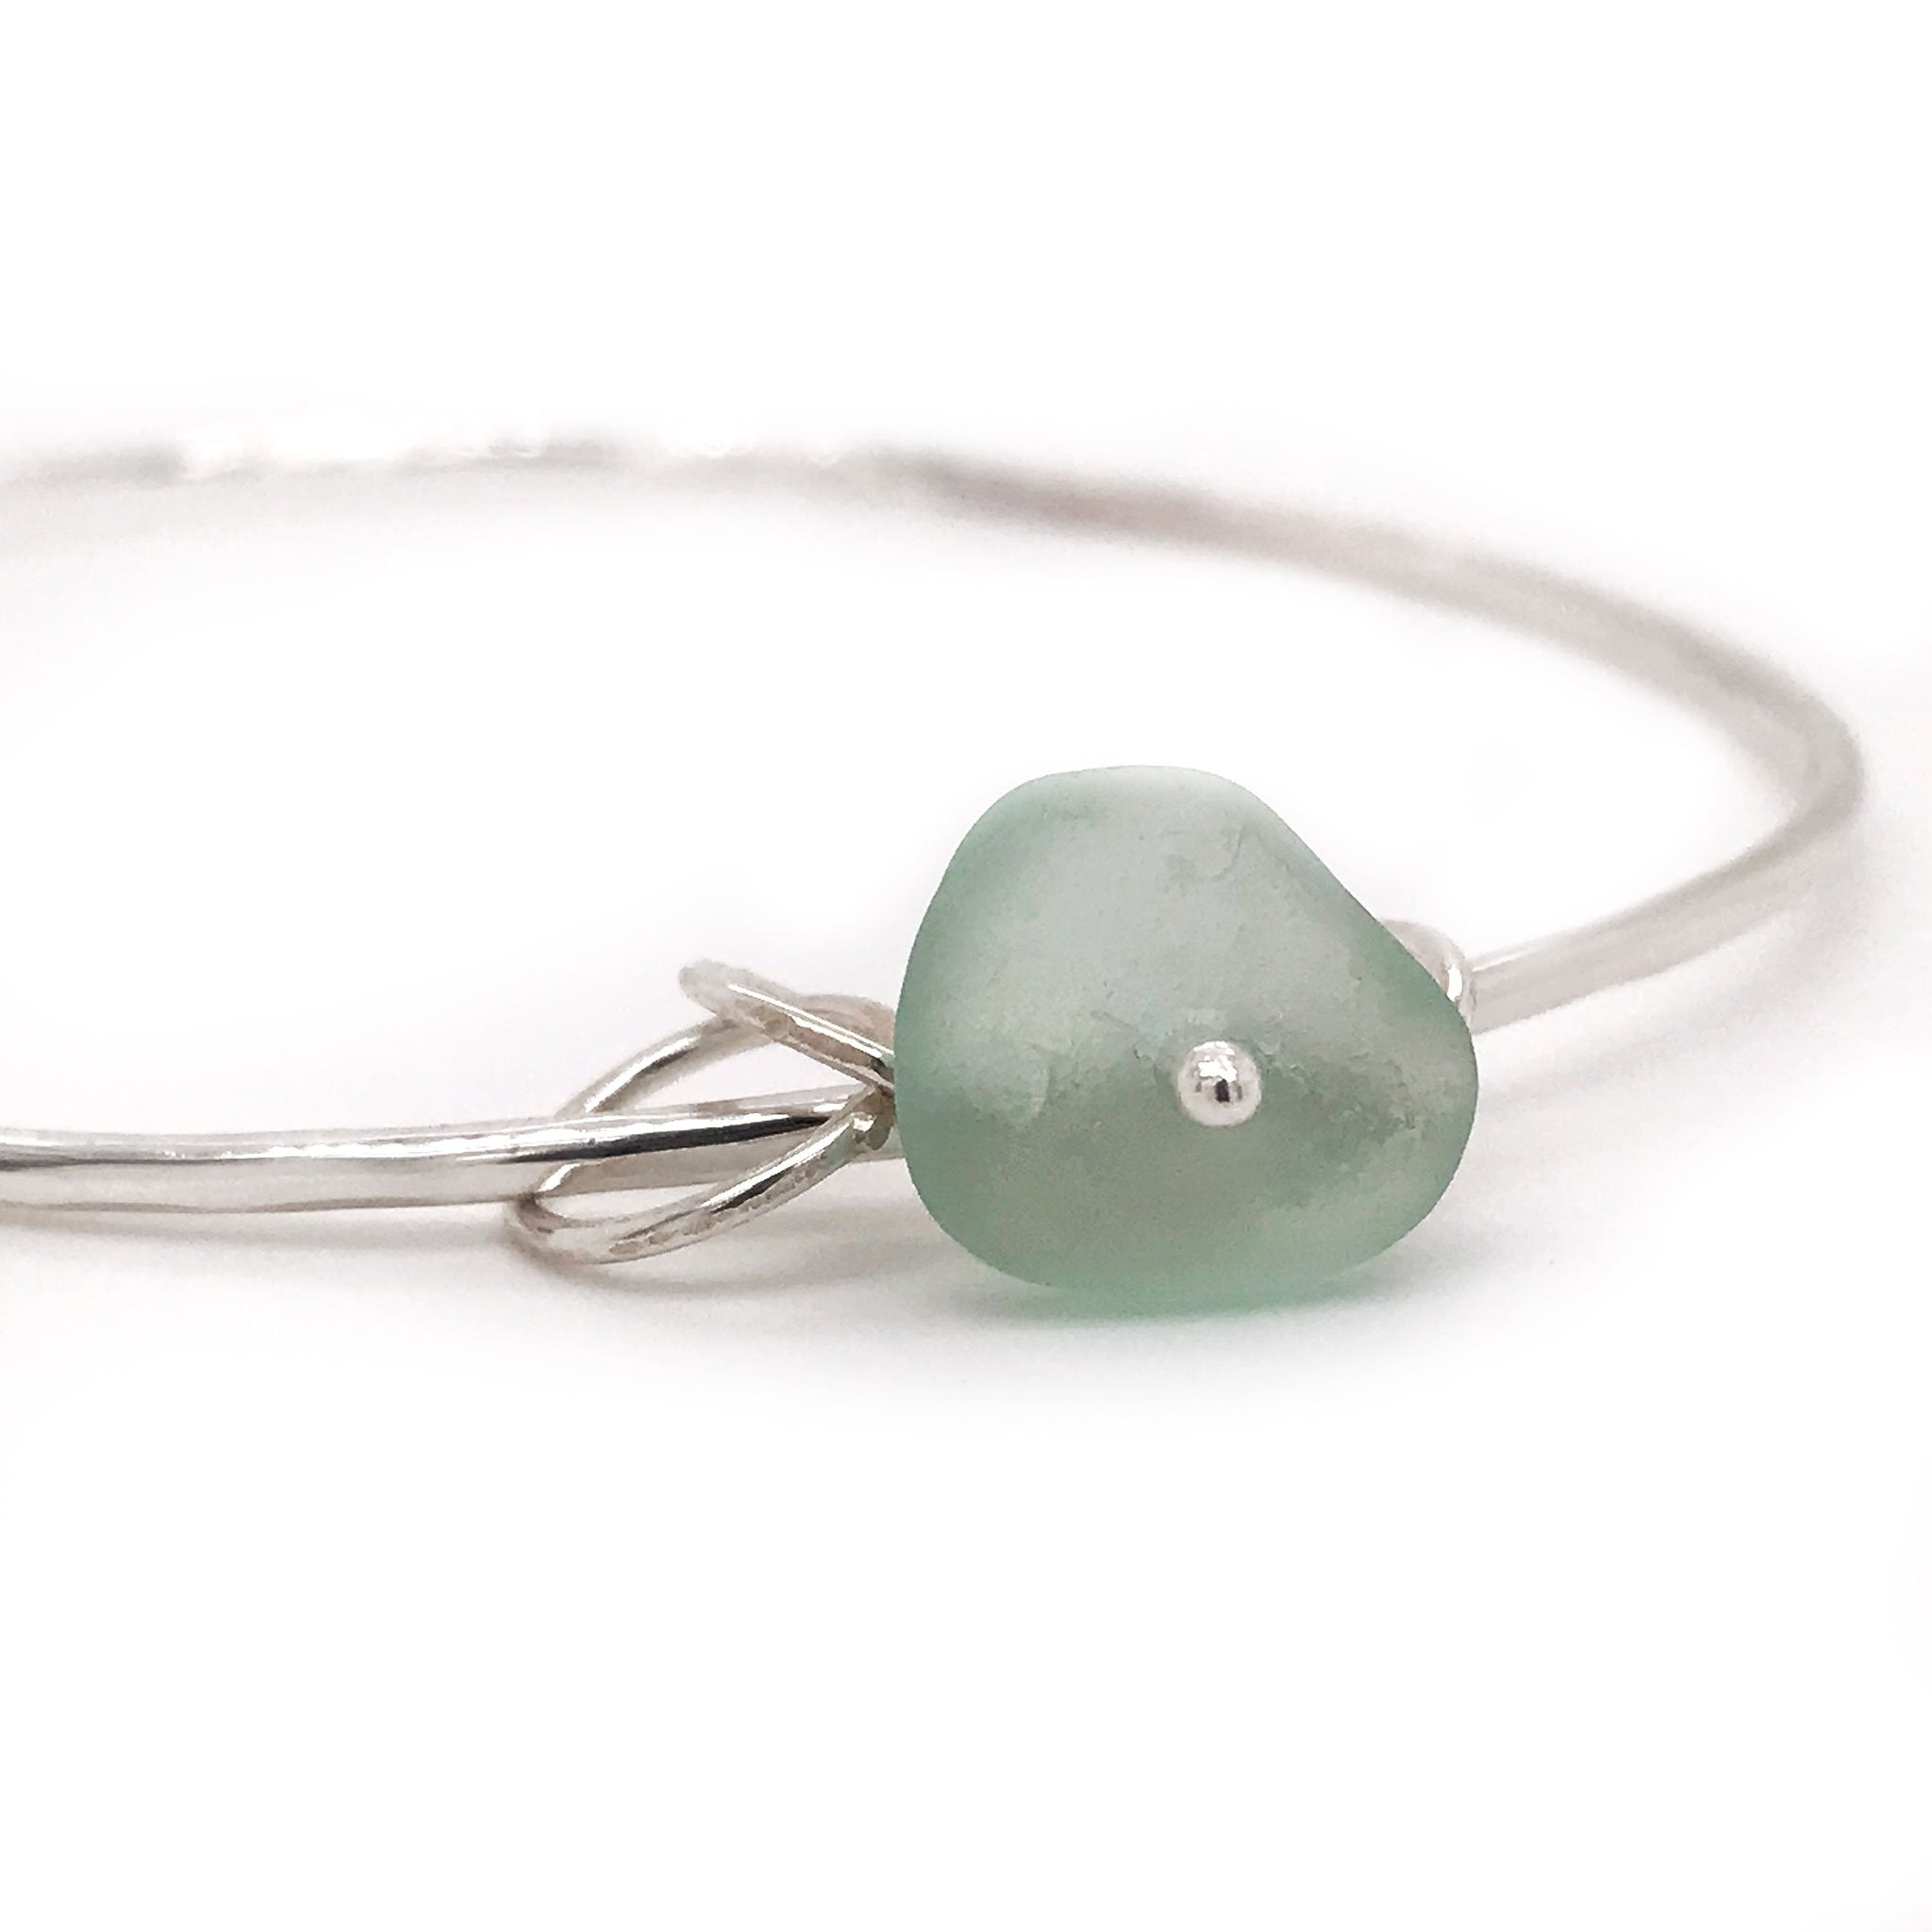 seafoam green seaglass bangle silver kriket broadhurst jewellery